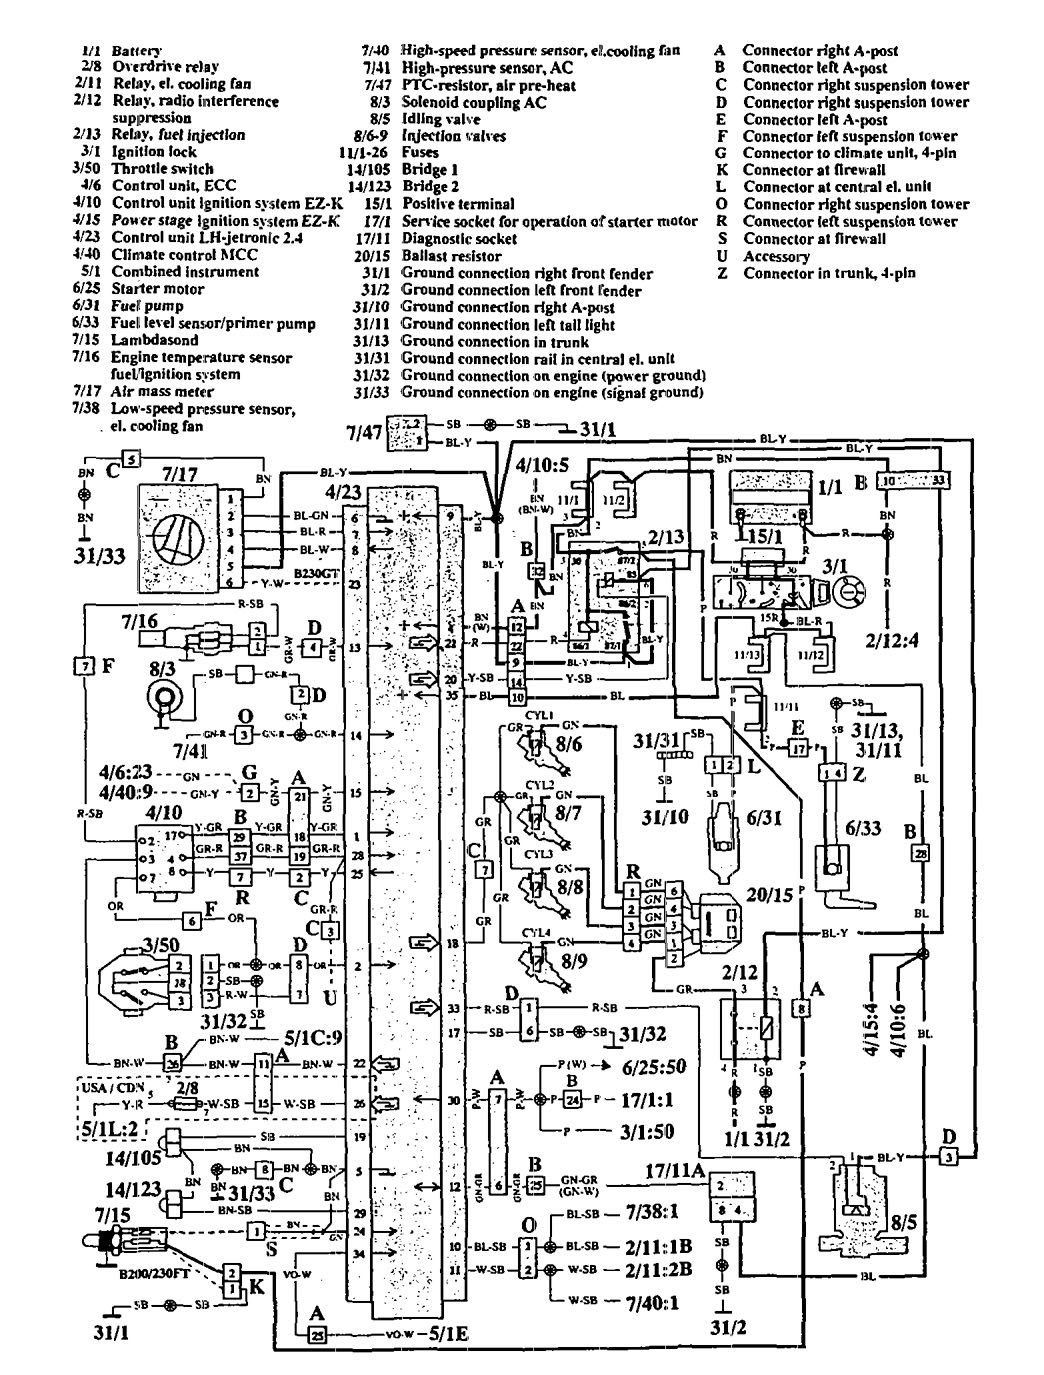 volvo d12 wiring diagram explore wiring diagram on the net u2022 rh bodyblendz store